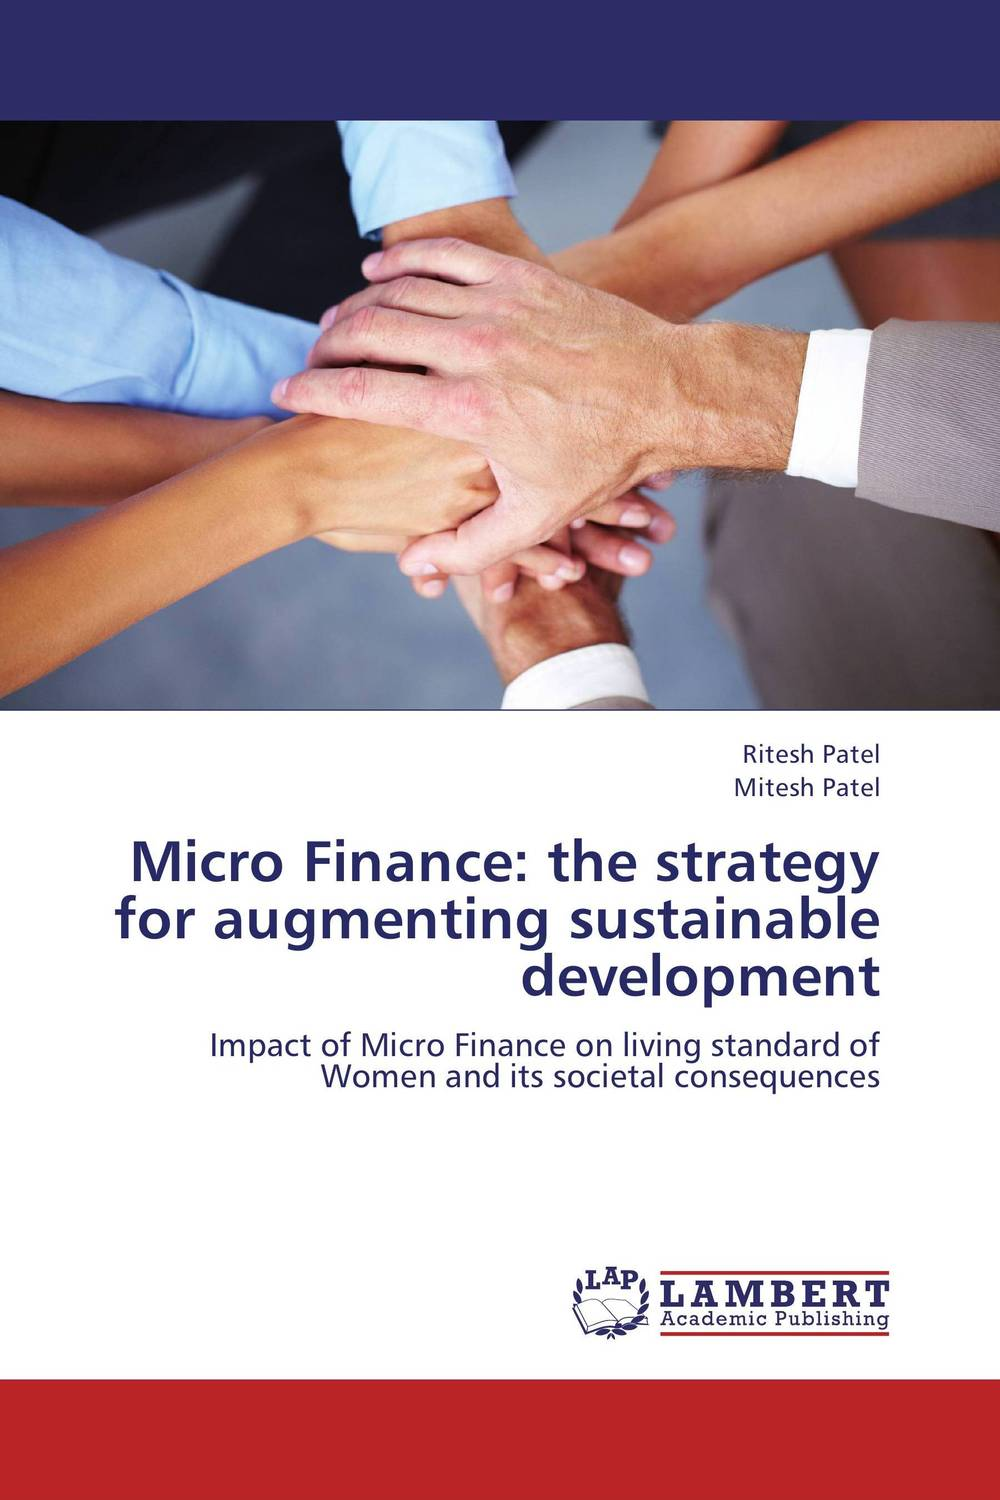 Micro Finance: the strategy for augmenting sustainable development seiko часы seiko skp393p1 коллекция premier